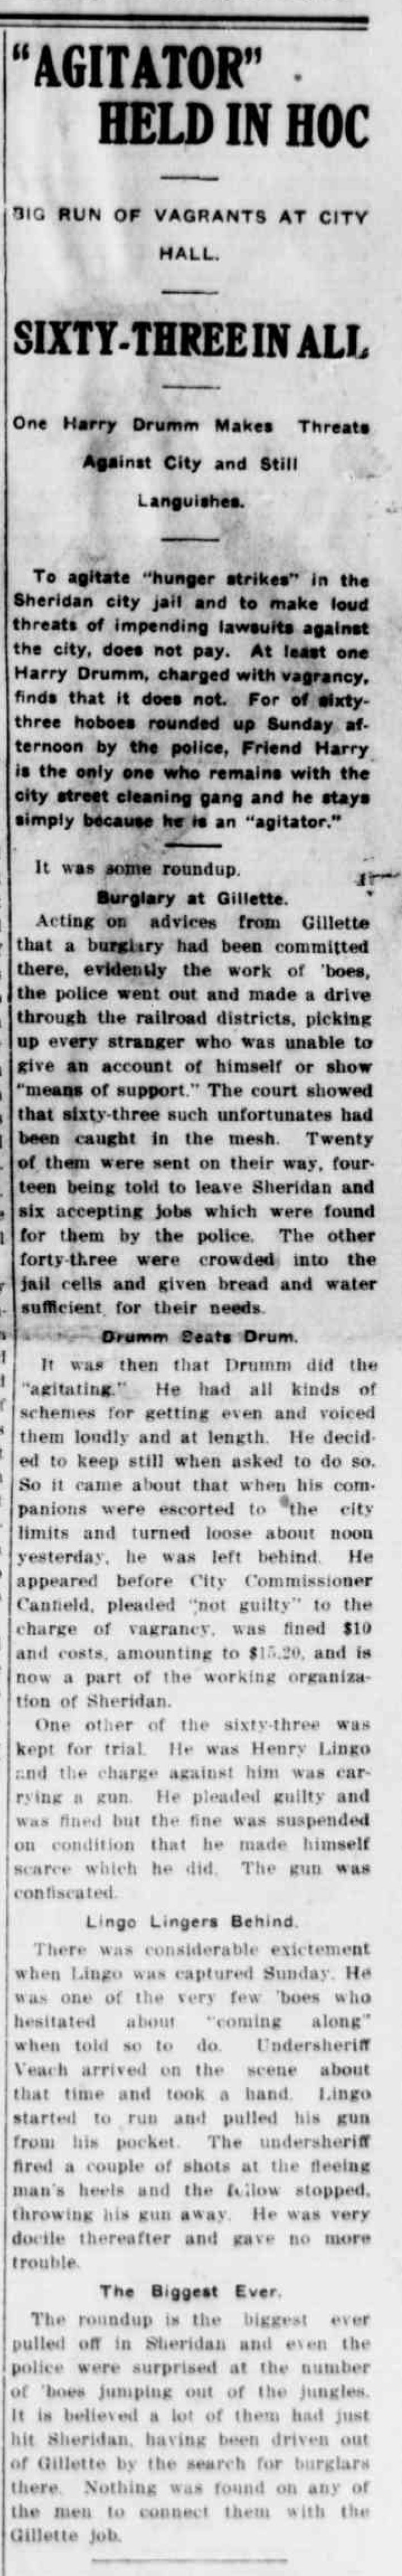 Sheridan Post, April 21, 1914